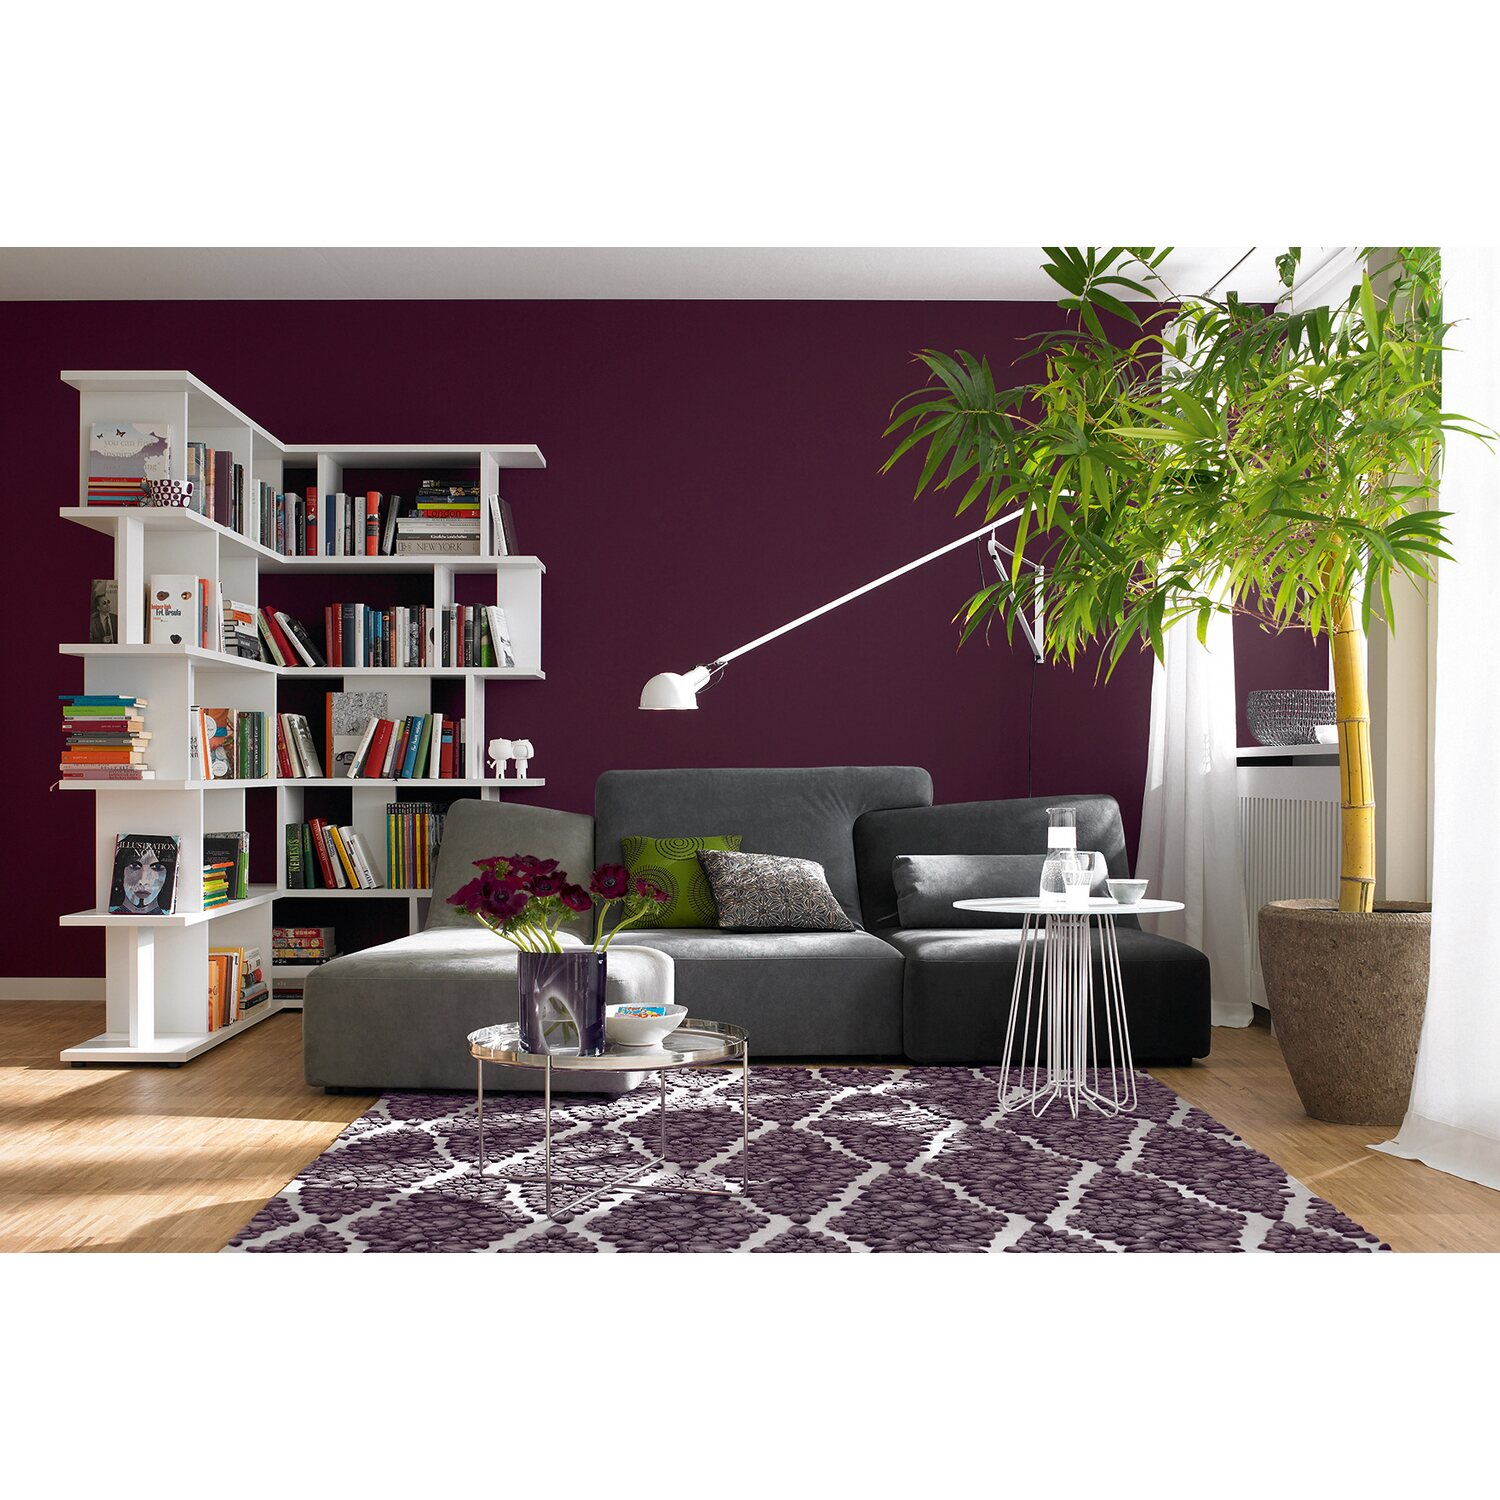 sch ner wohnen trendfarbe lounge seidengl nzend 2 5 l. Black Bedroom Furniture Sets. Home Design Ideas